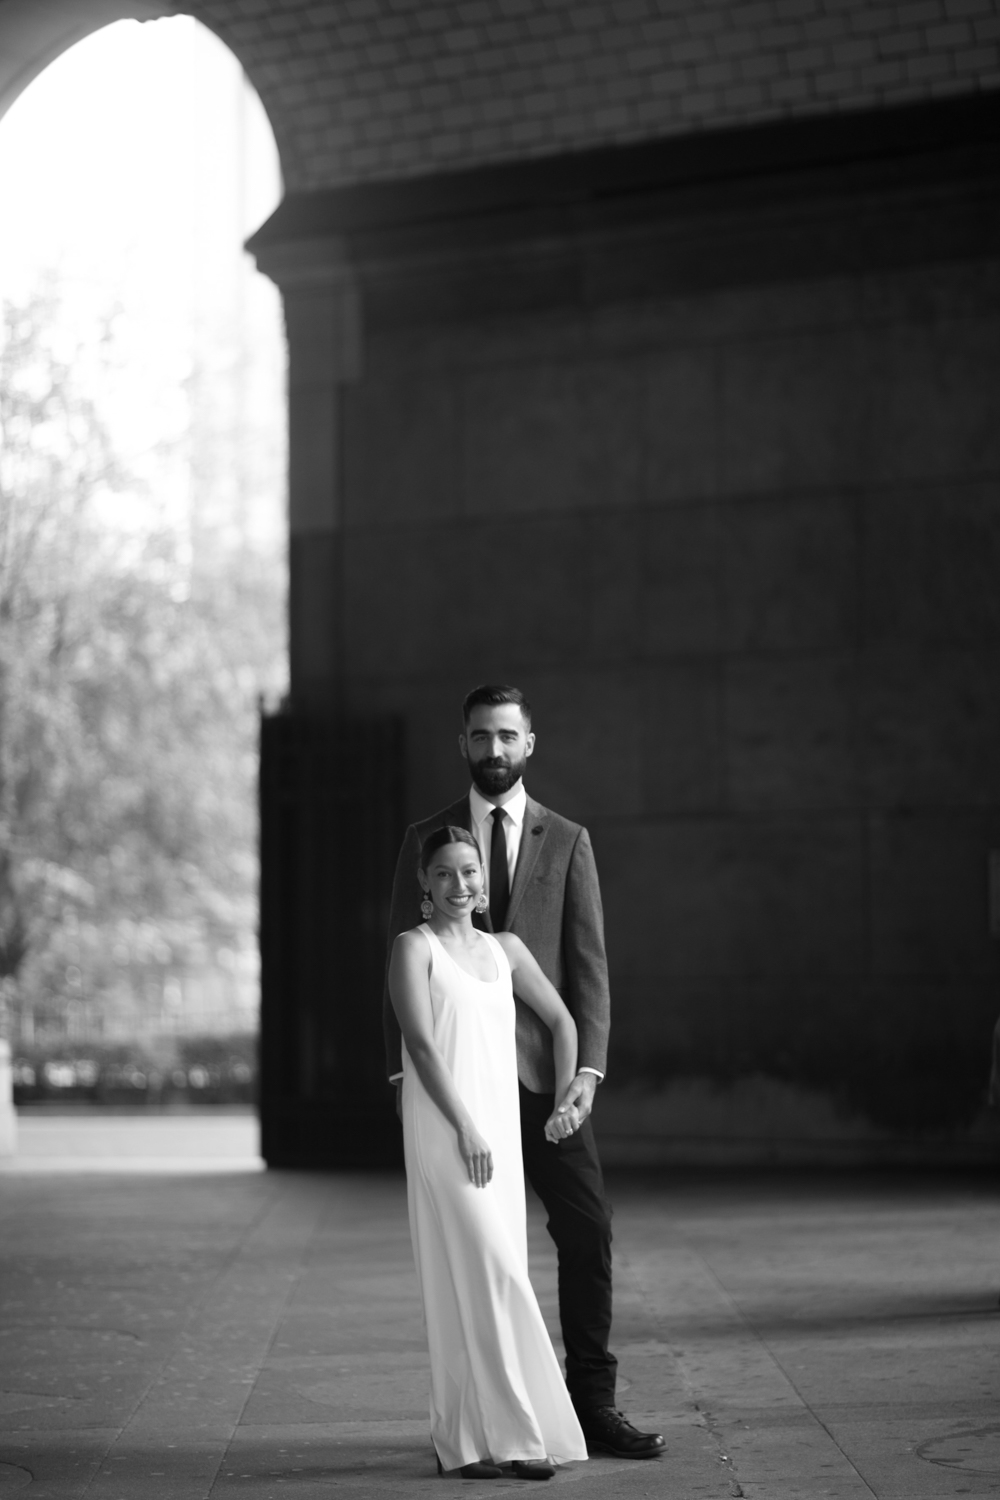 Black and white portrait of a bride and groom on their wedding day.